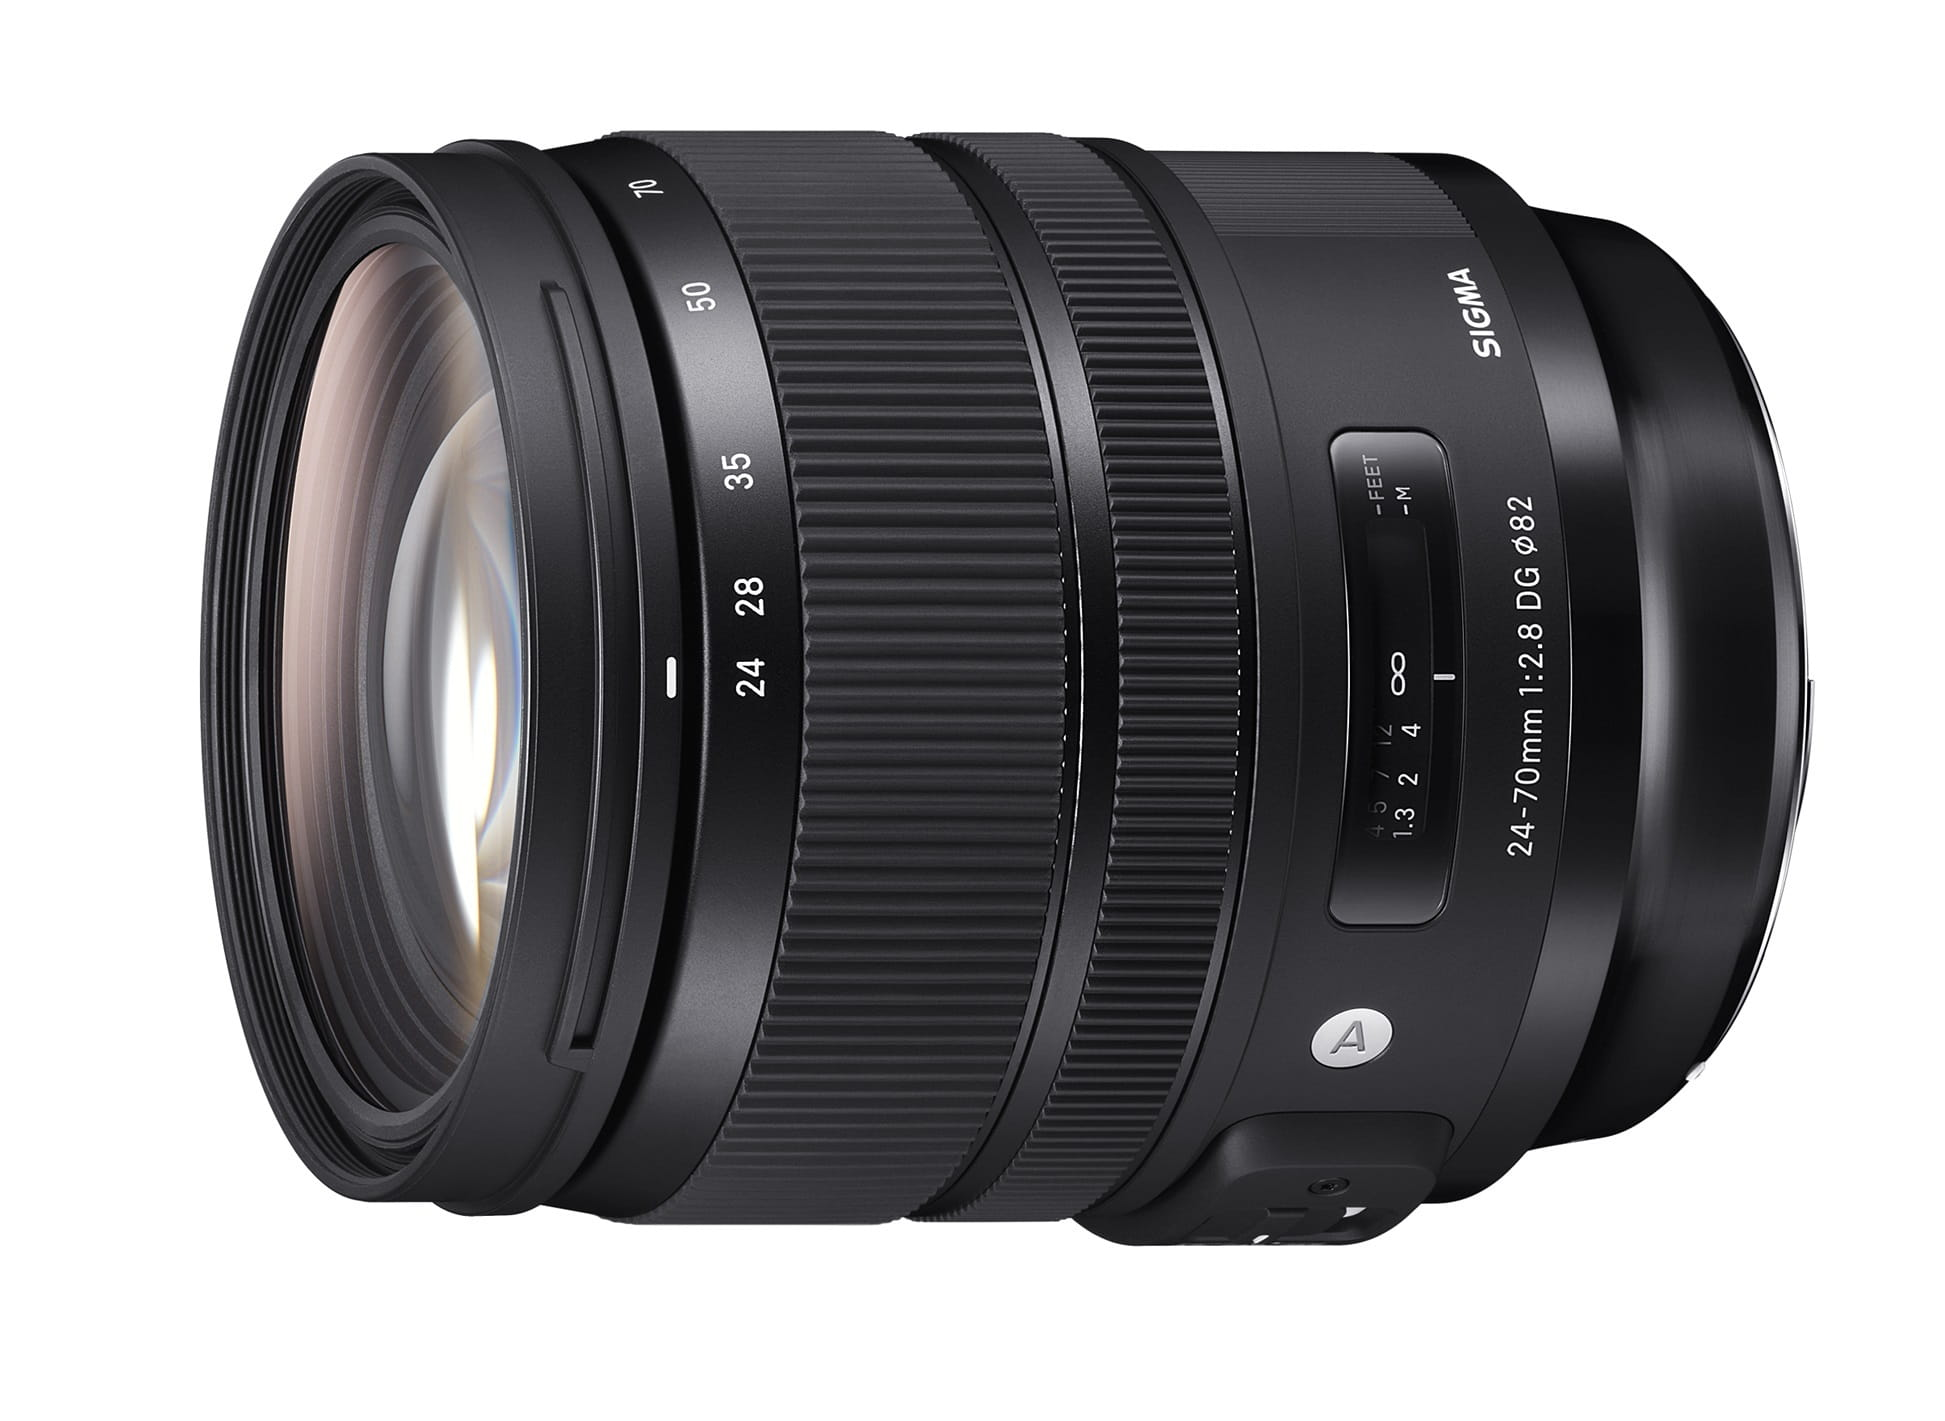 Sigma 24-70 mm f/2.8 DG OS HSM Canon